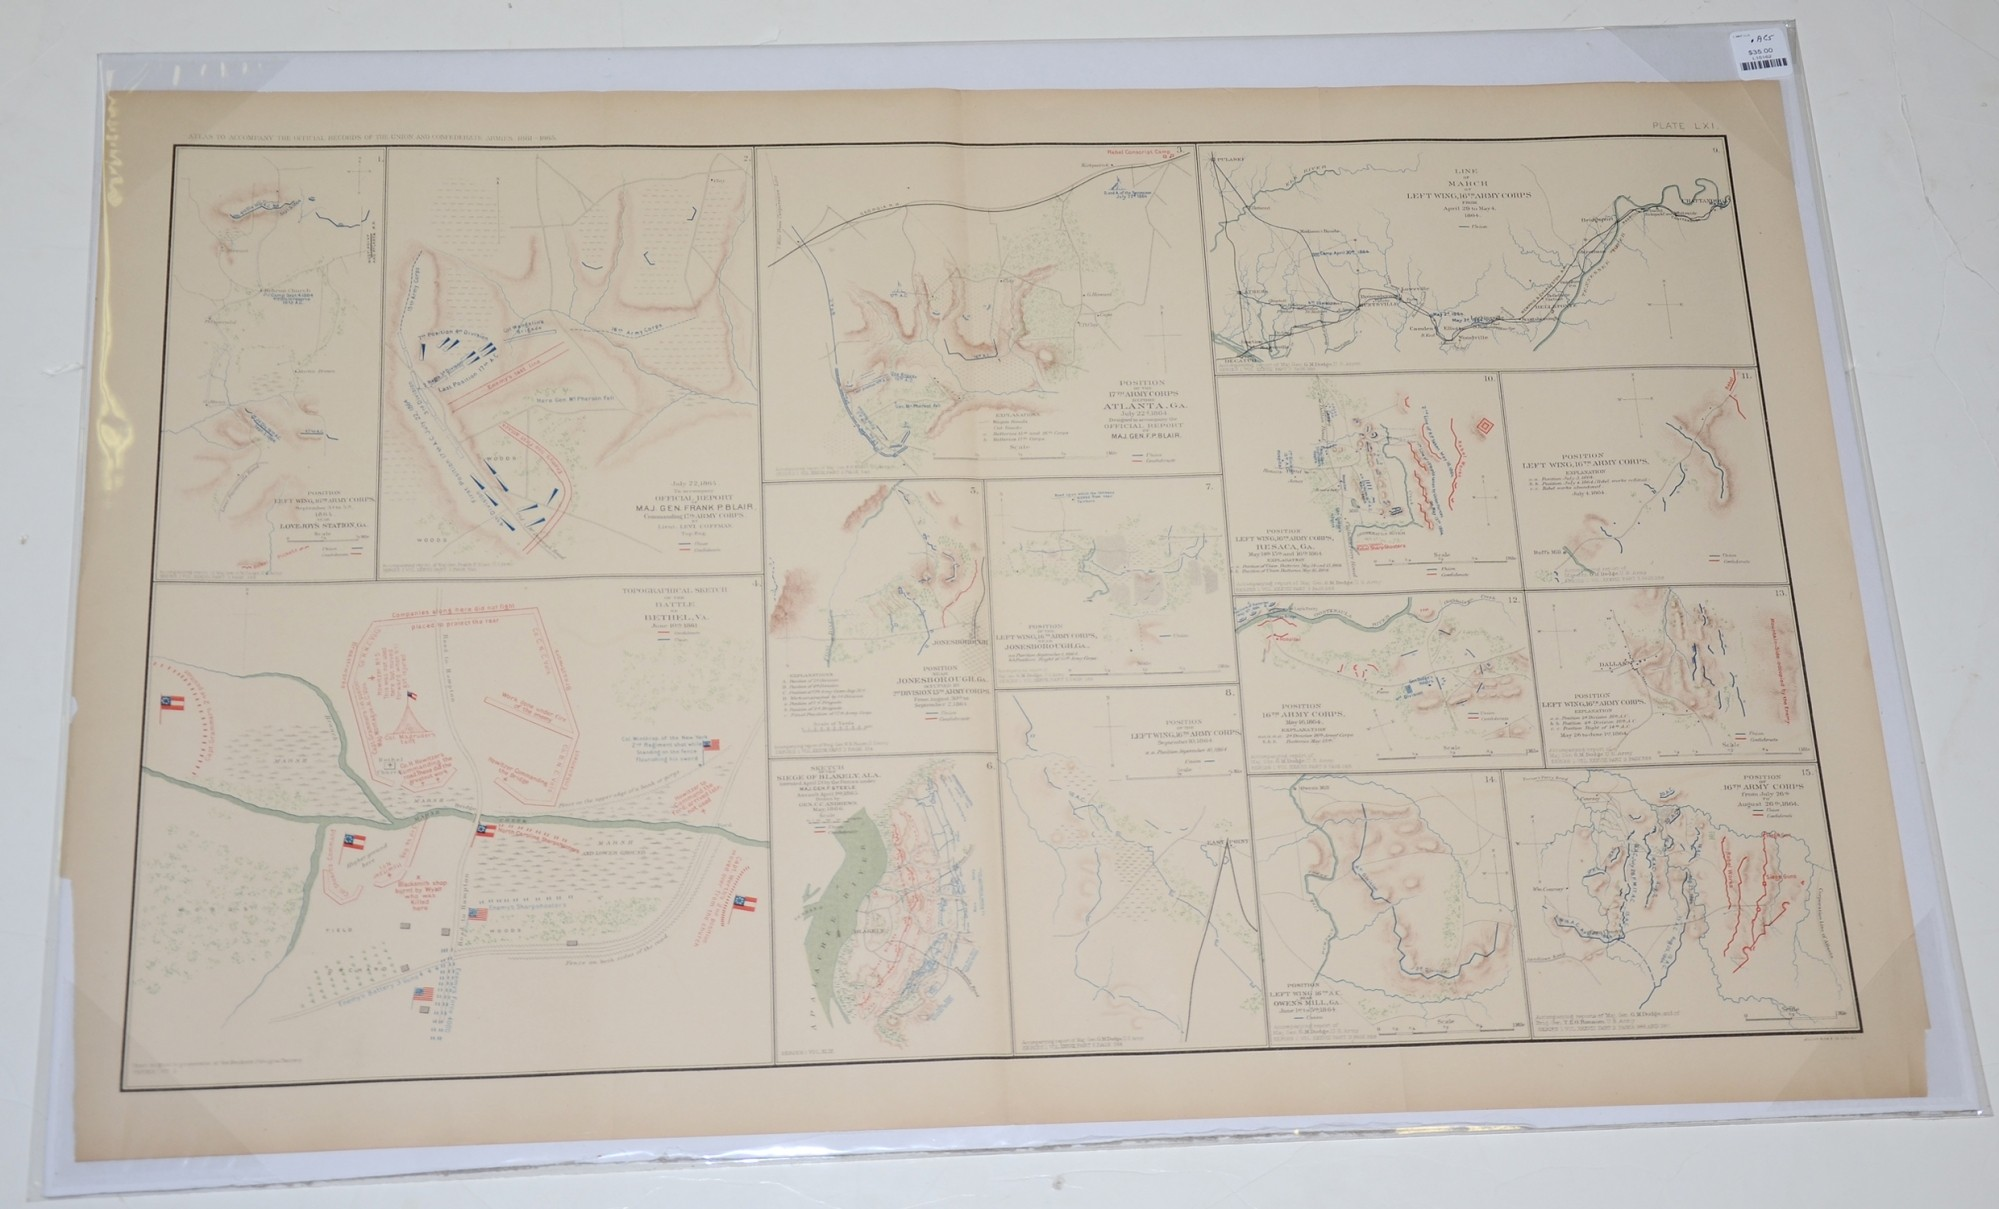 MAPS OF OPERATIONS IN VIRGINIA AND GEORGIA DURING THE SUMMER OF 1864